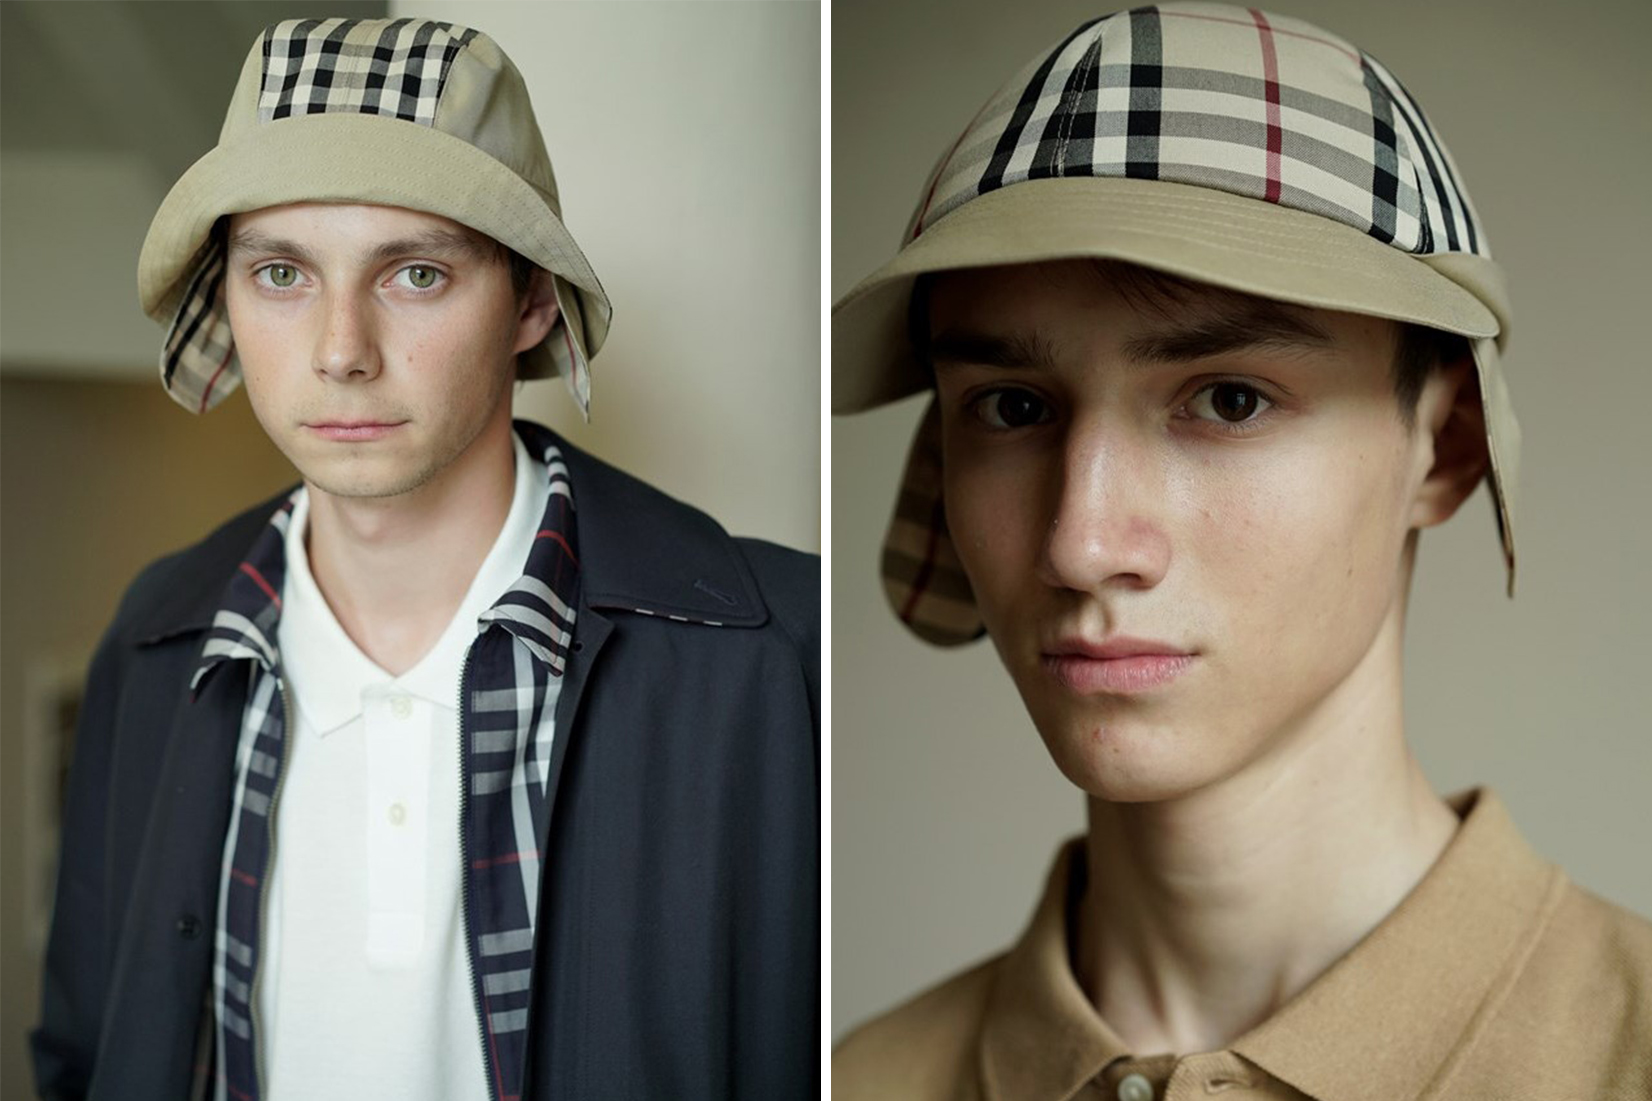 7423bc0ab525 For his Spring/Summer 2018 collection, Gosha Rubchinskiy has continued to  develop themes around youth culture, with soccer and rave culture proving  to be ...